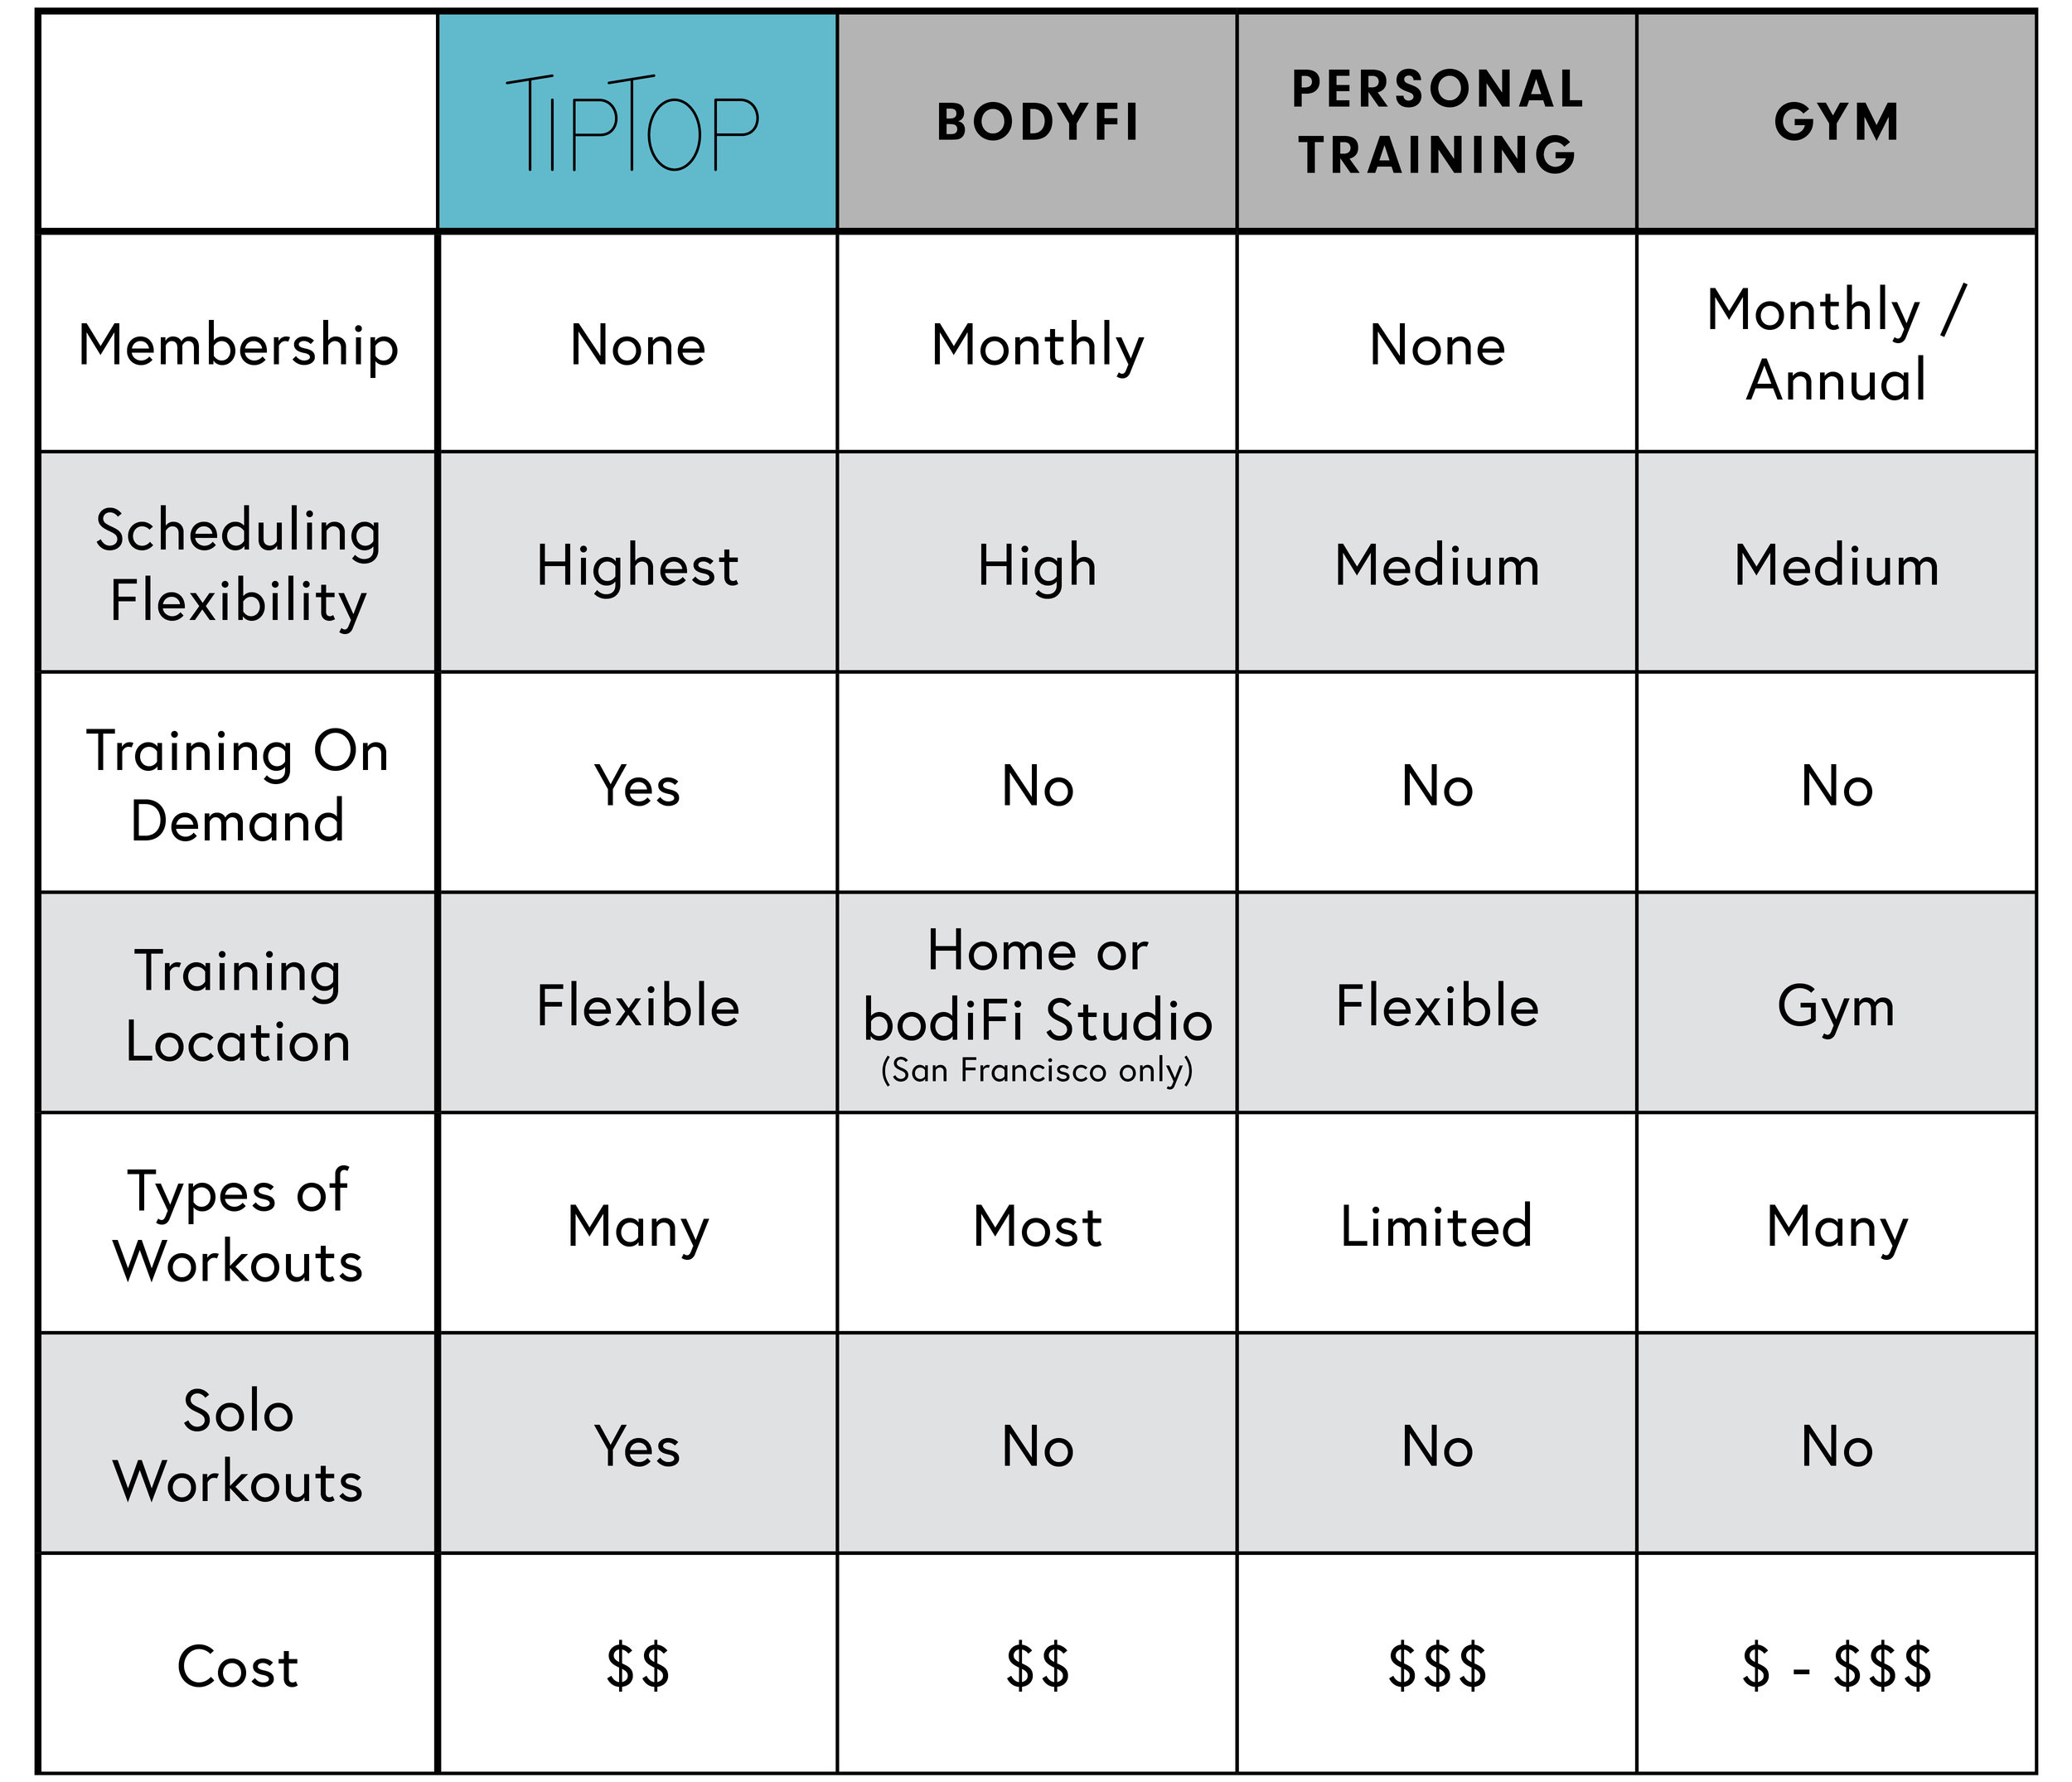 COMPETITIVE ANALYSIS - TipTop has the highest flexibility in scheduling and training location.